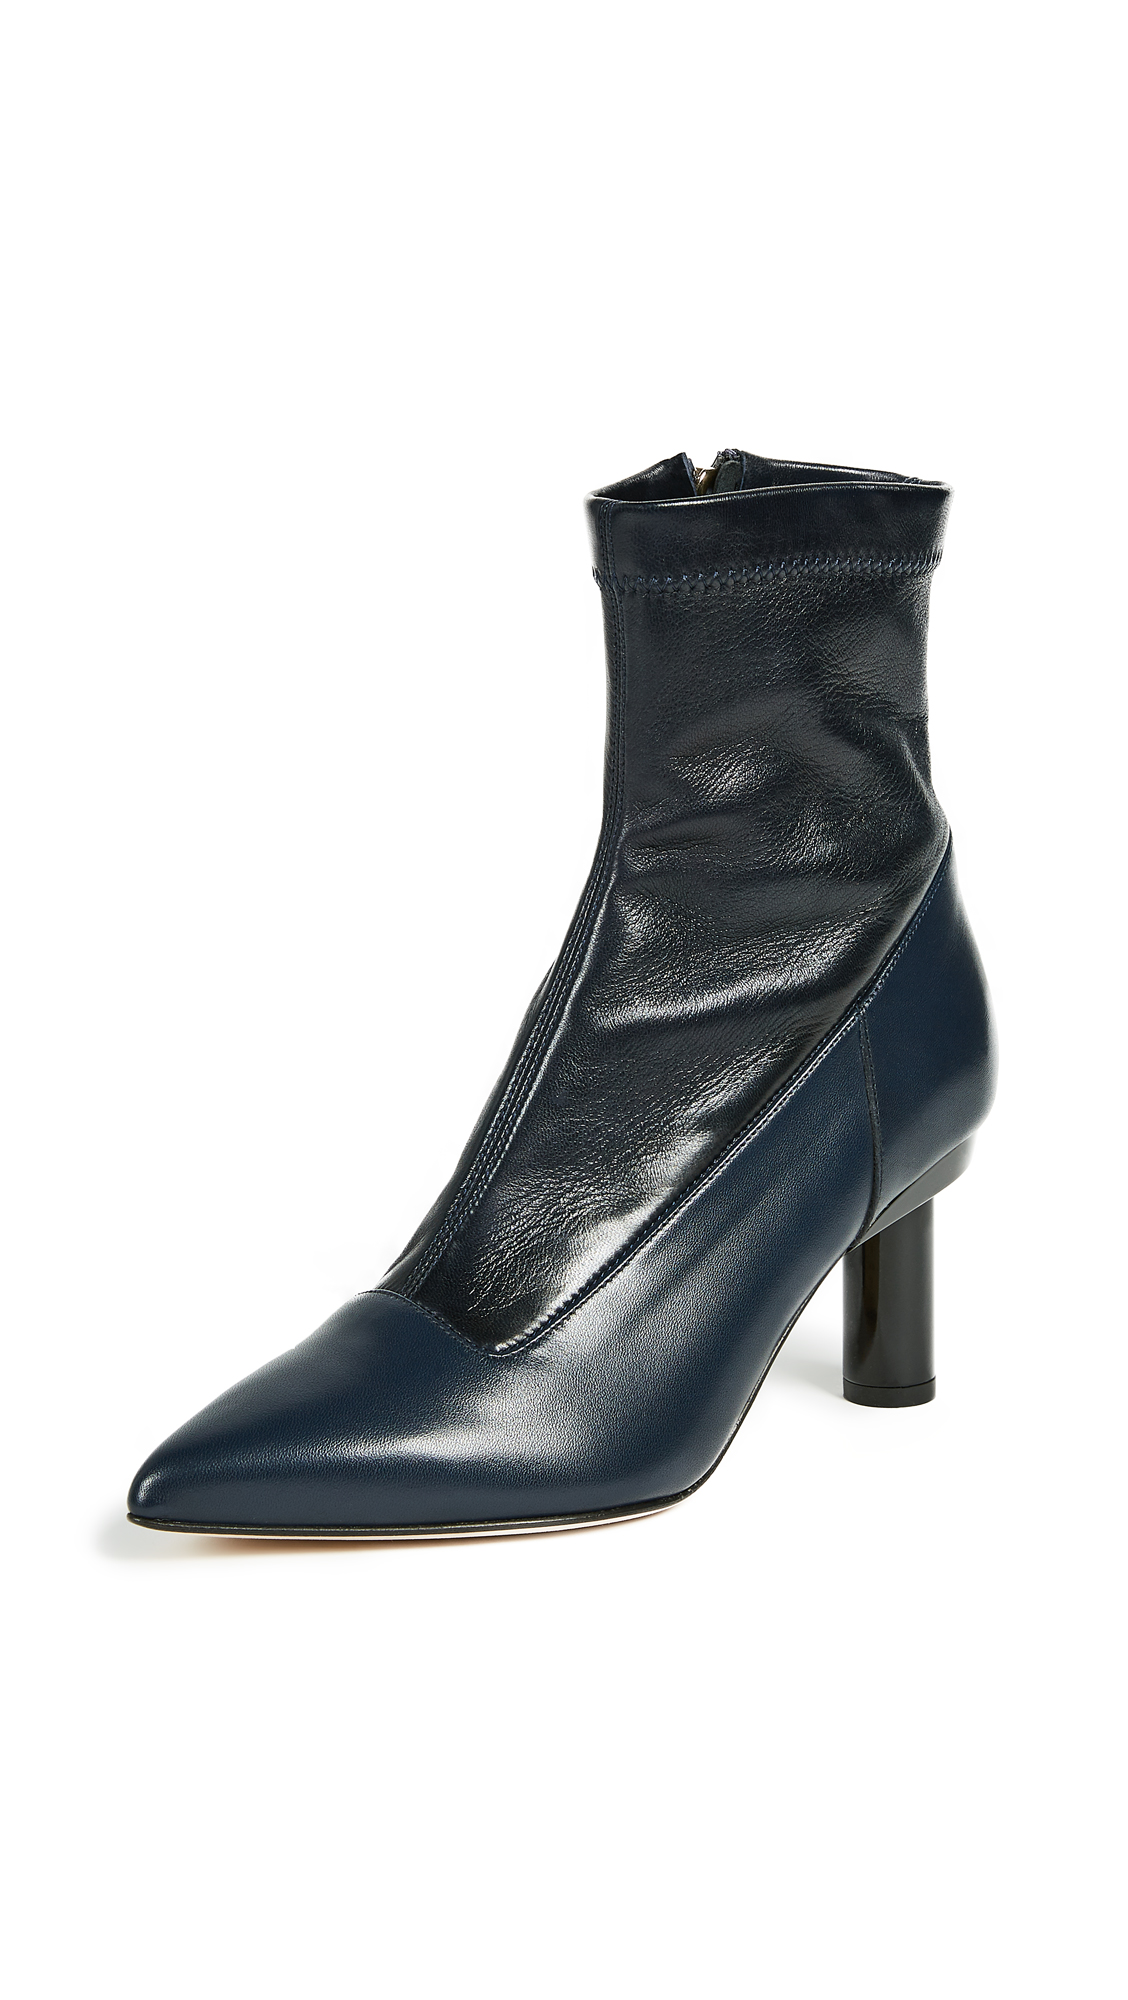 Tibi Ethan Booties - Black/Navy